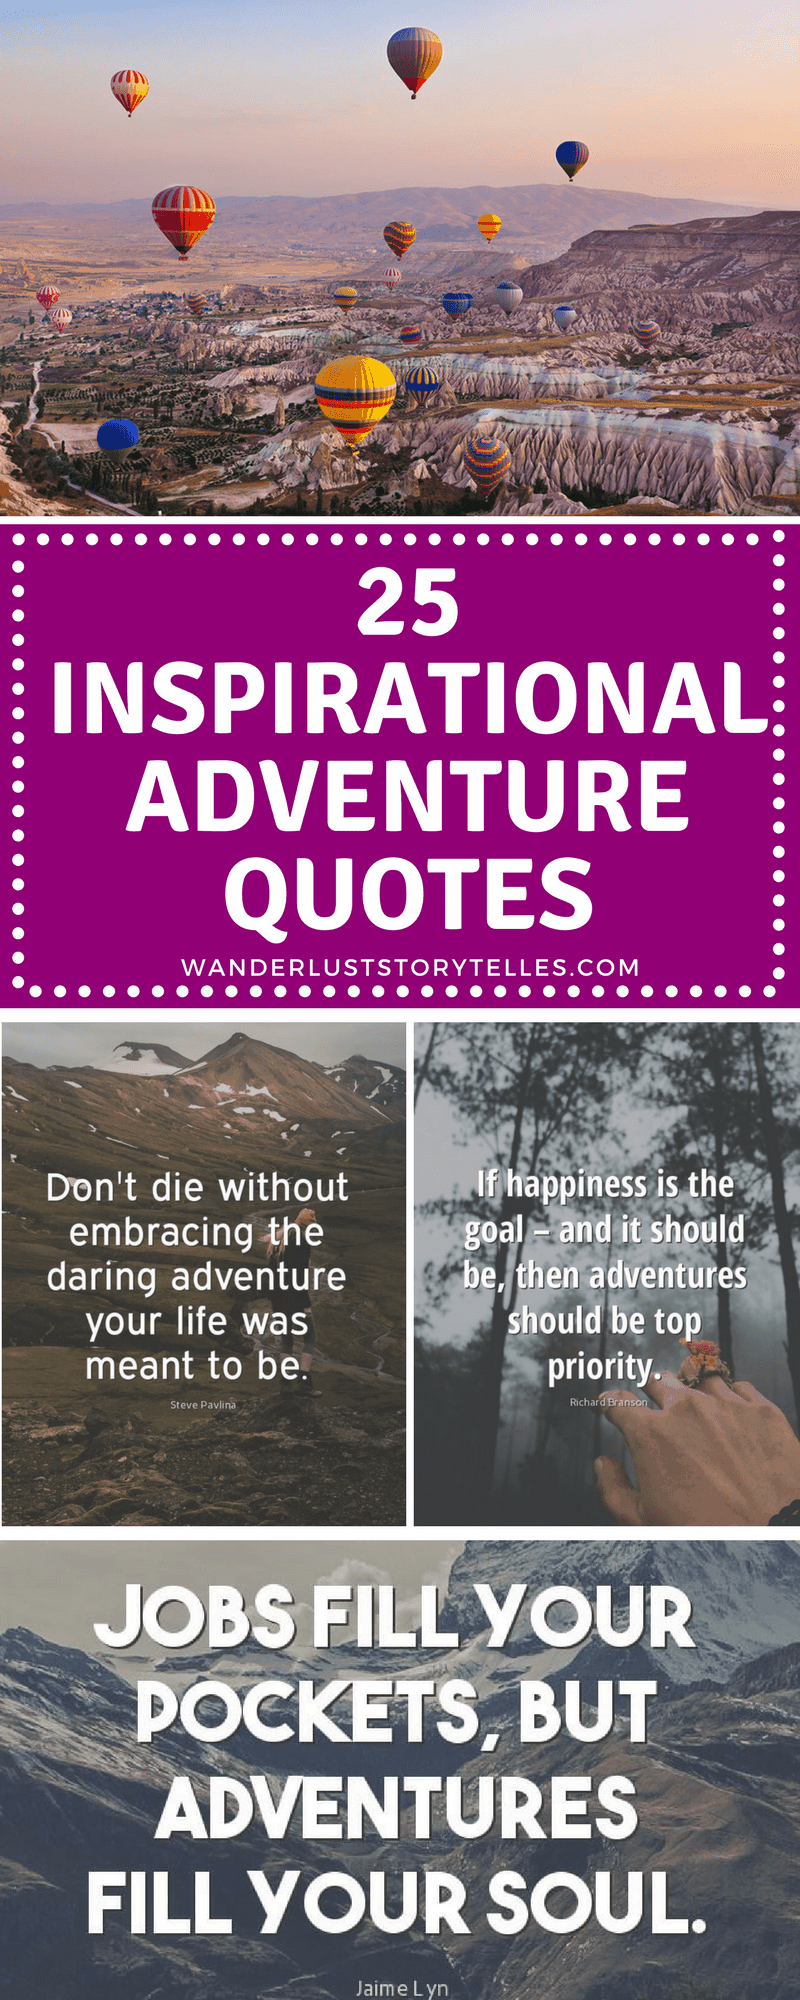 The Ultimate List Of 25 Inspirational Adventure Quotes, Click To See Them  All On Wanderluststorytellers